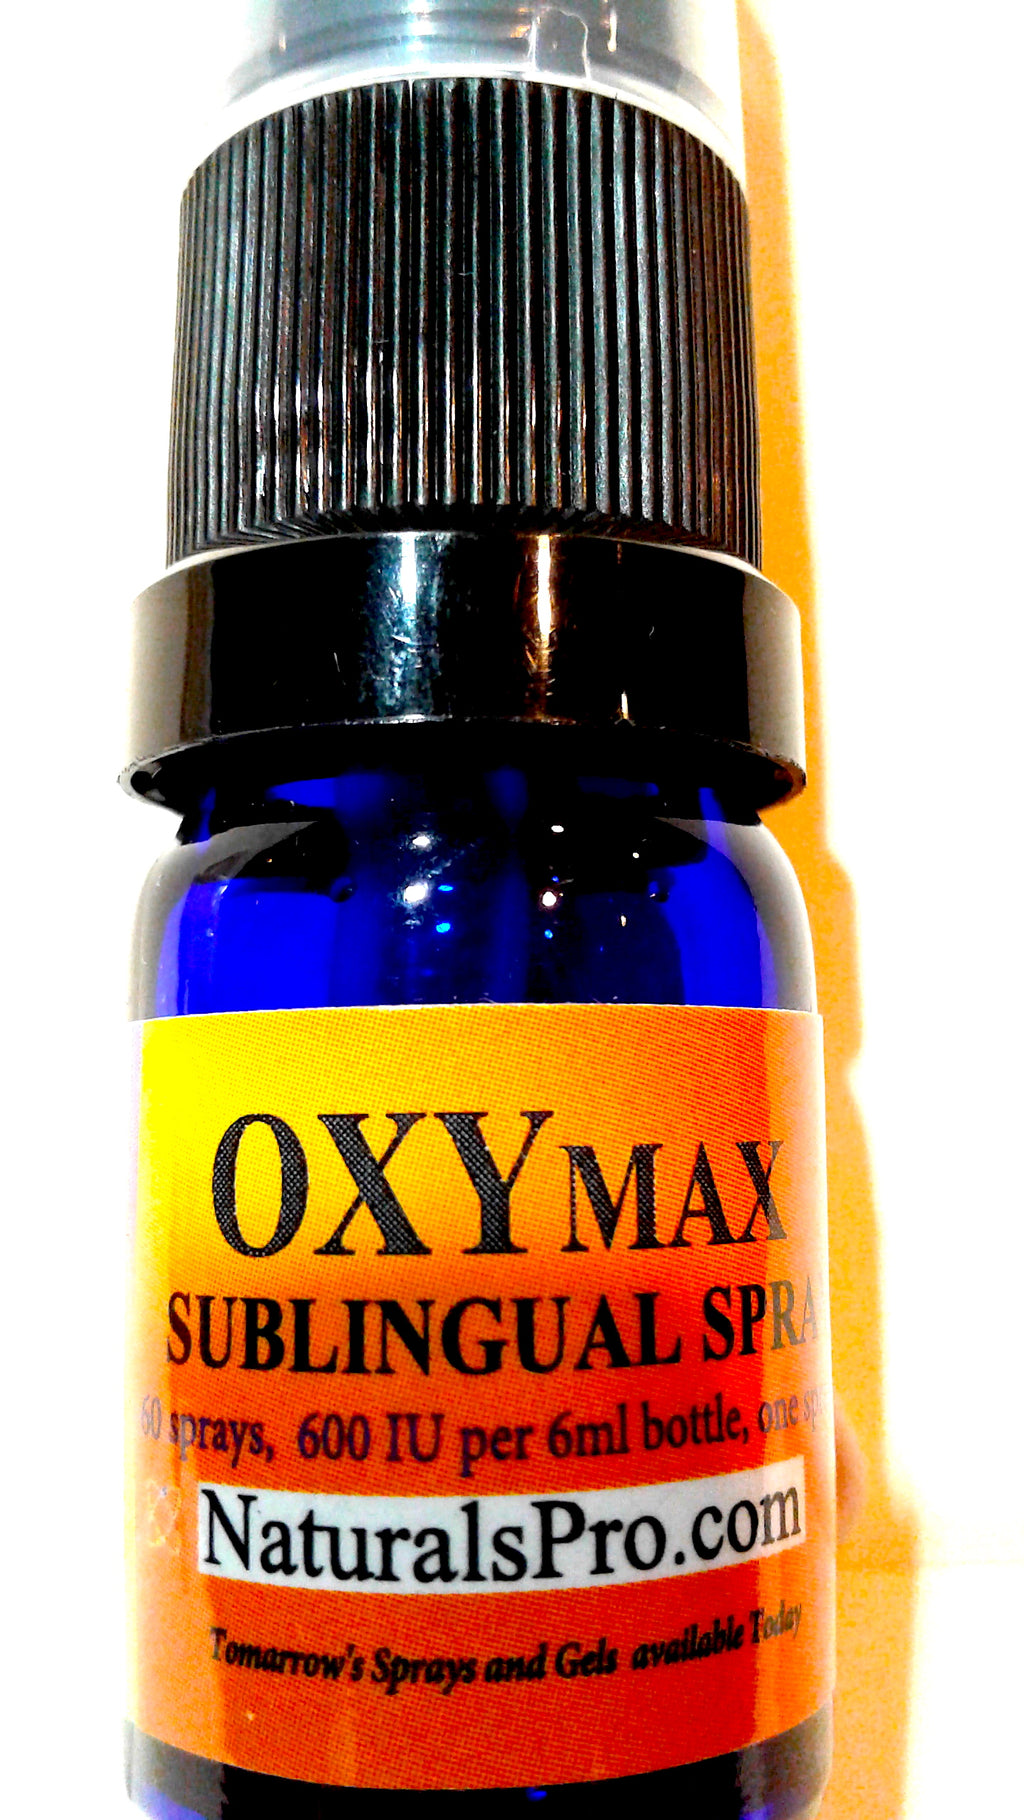 OxyMax Sublingual or Topical Spray, the bonding & love amino acid chain oxypro. $29.50.